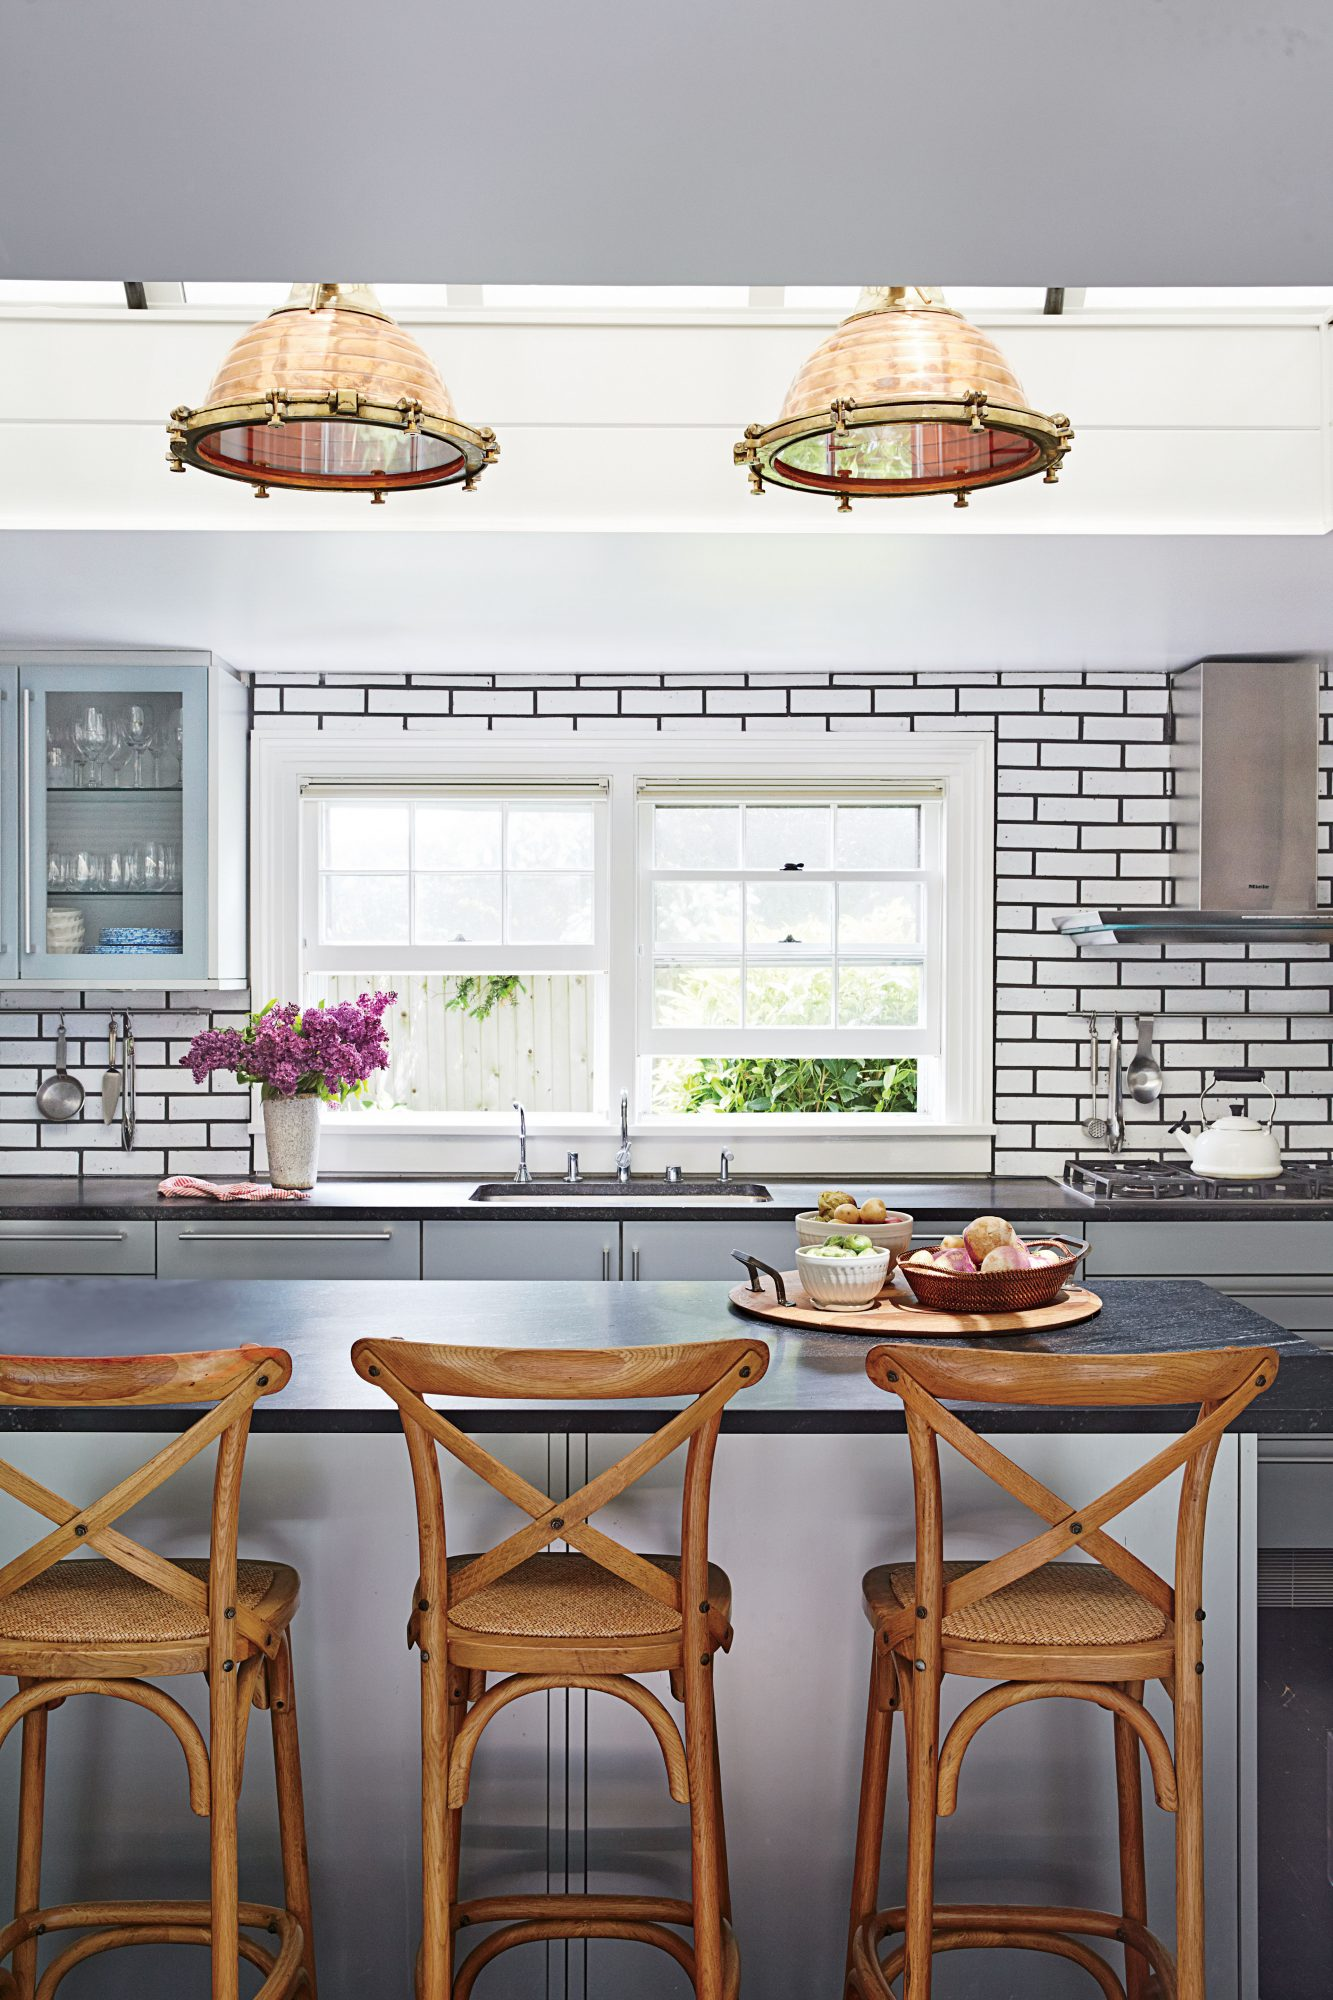 Predominately outfitted with light and dark elements, this Long Island kitchen gets an infusion of natural elements from the copper light fixtures and wooden bar stools.